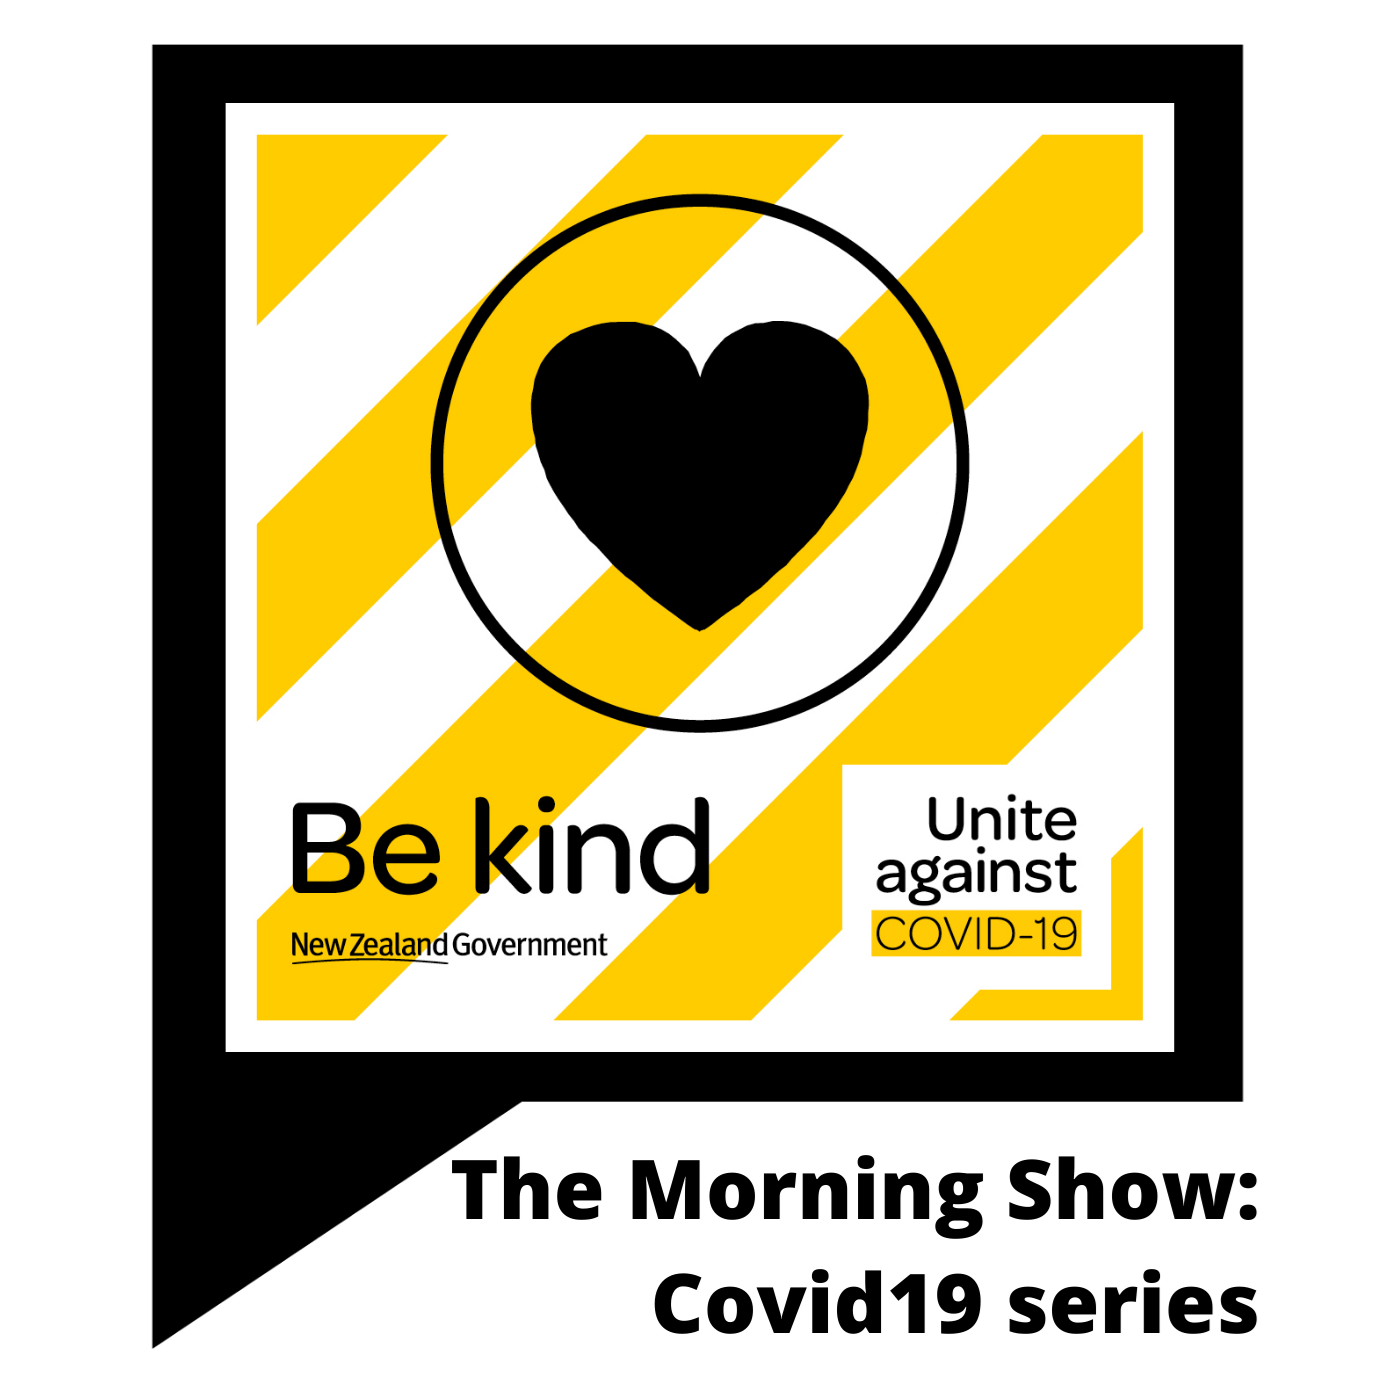 The Morning Show: Covid19 series